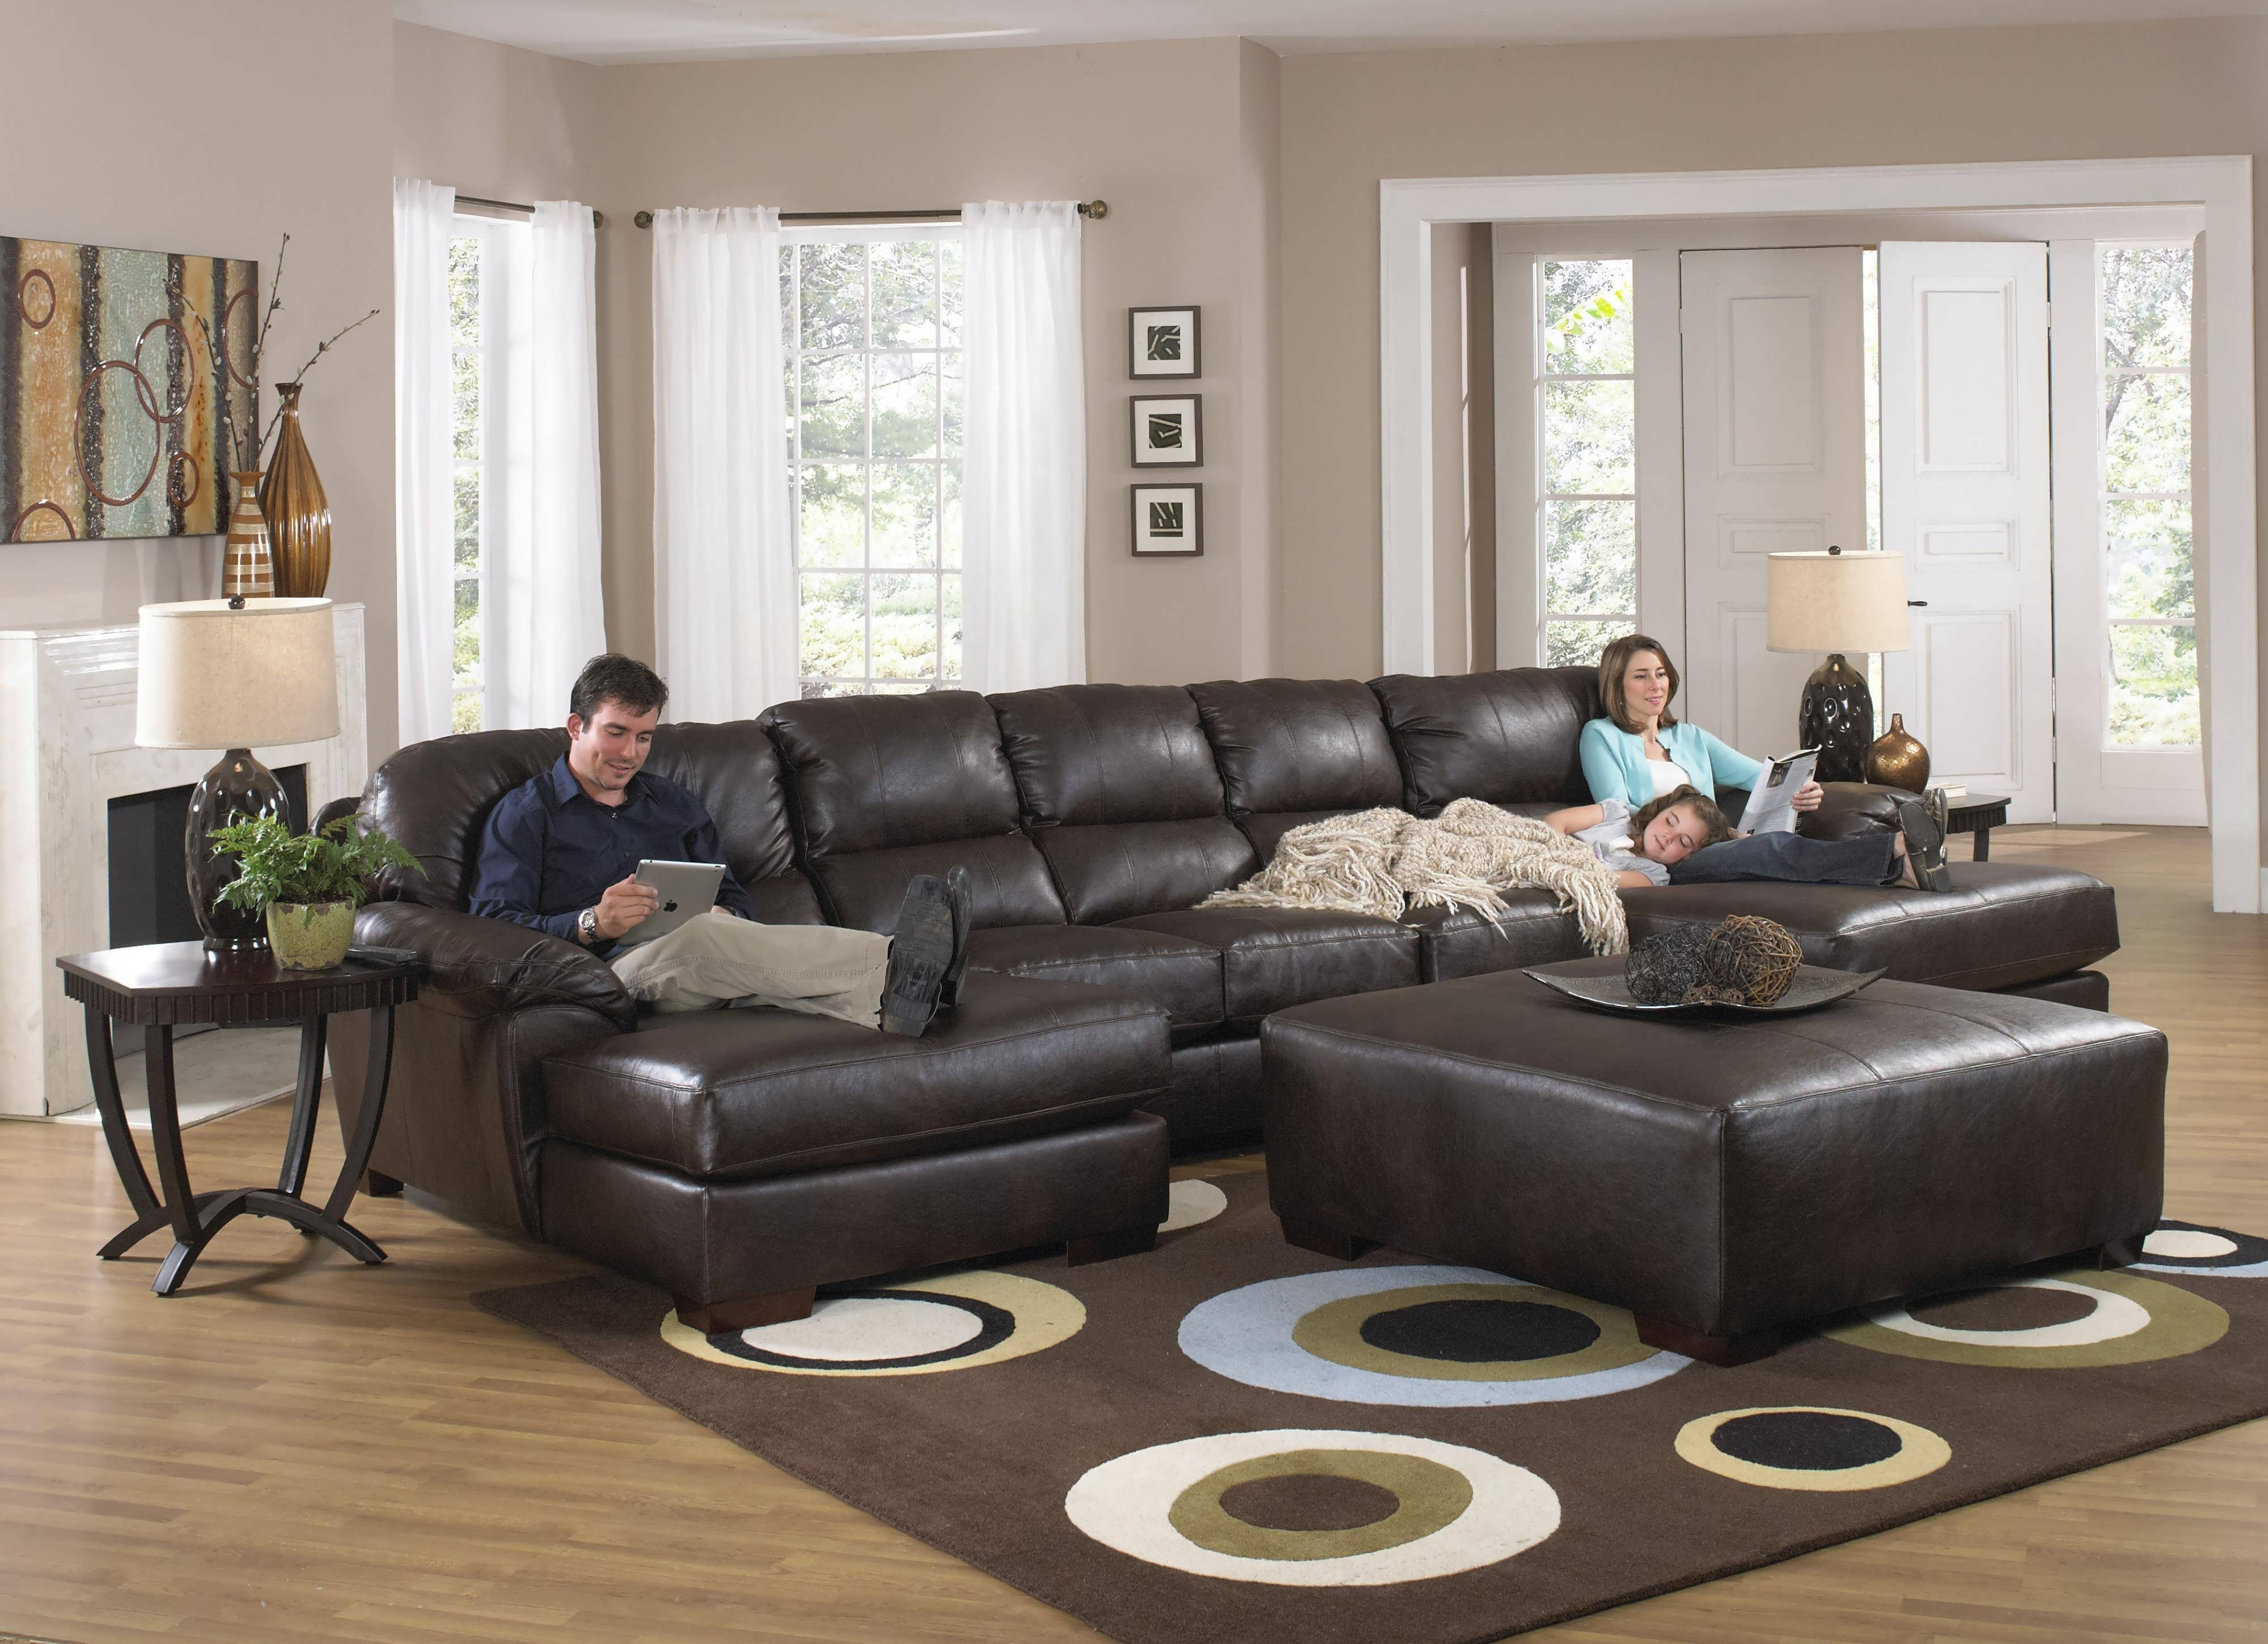 2017 Sofa : Microfiber Sectional Grey Sectional Wrap Around Couch Cheap With Microfiber Sectionals With Chaise (View 1 of 15)